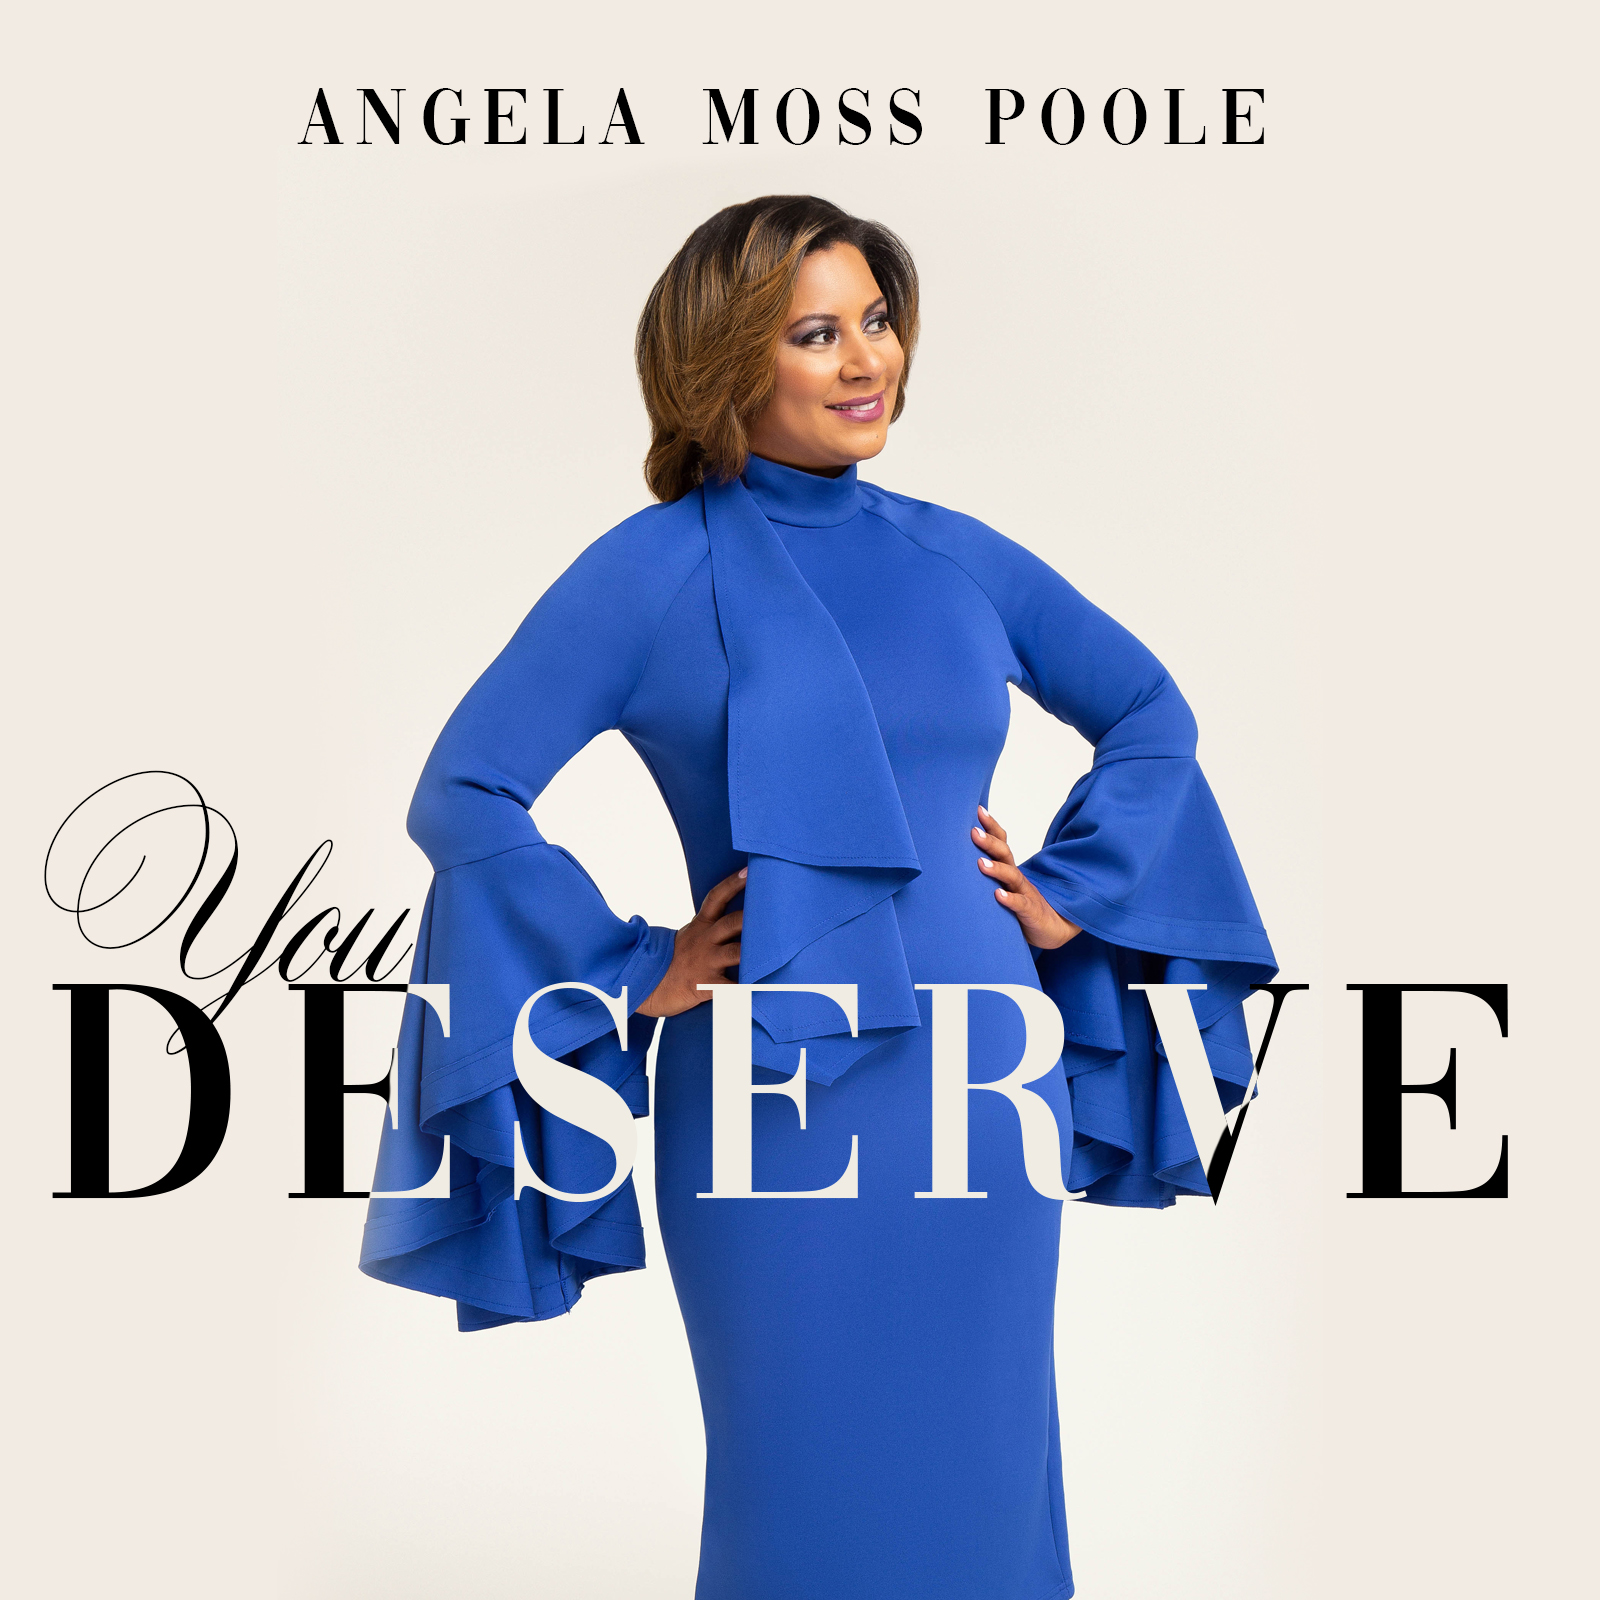 You Deserve by Angela Moss Poole